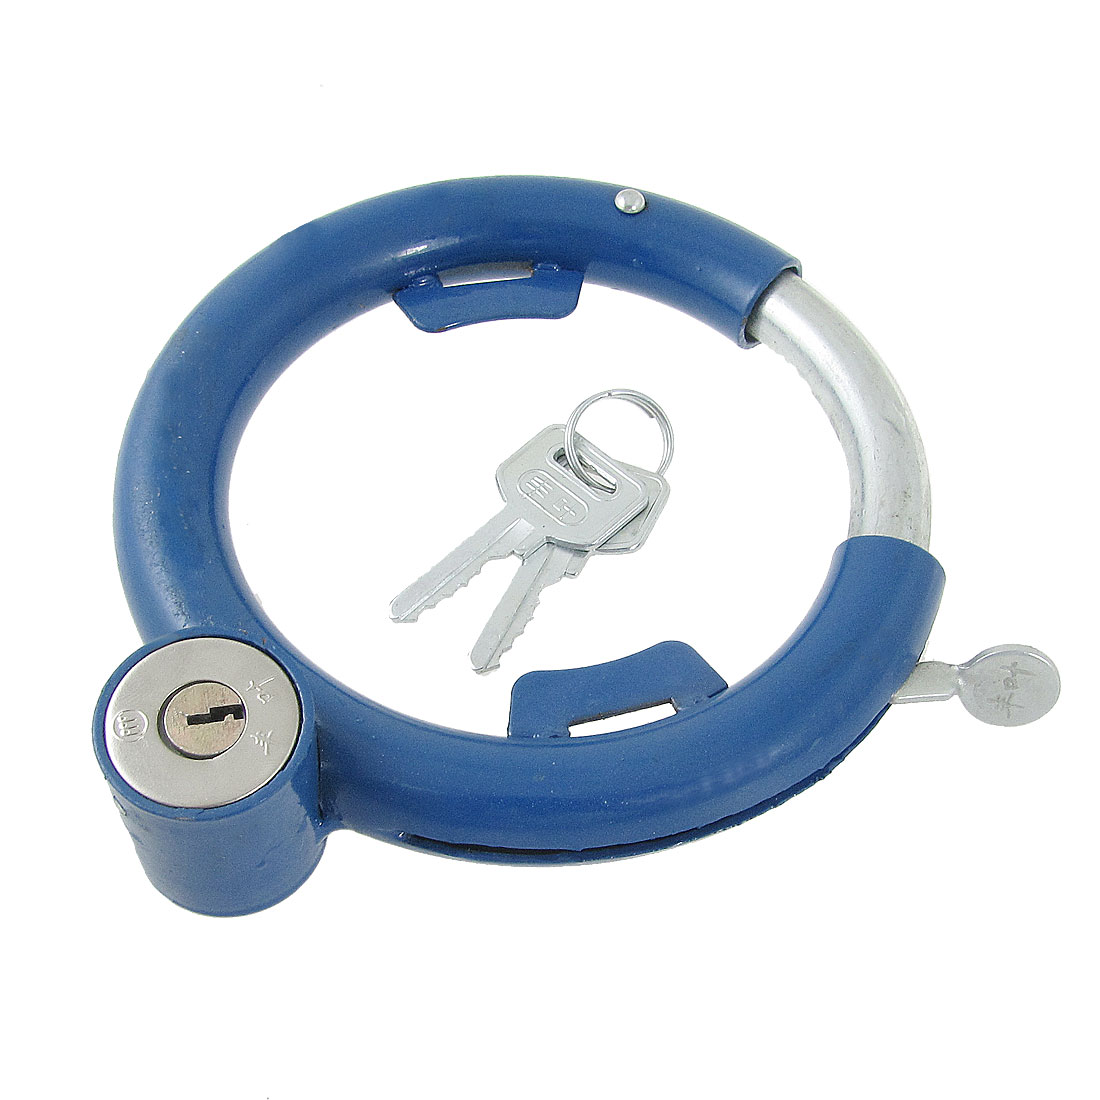 Blue Silver Tone O Shaped Security Bicycle Lock w 2 Keys